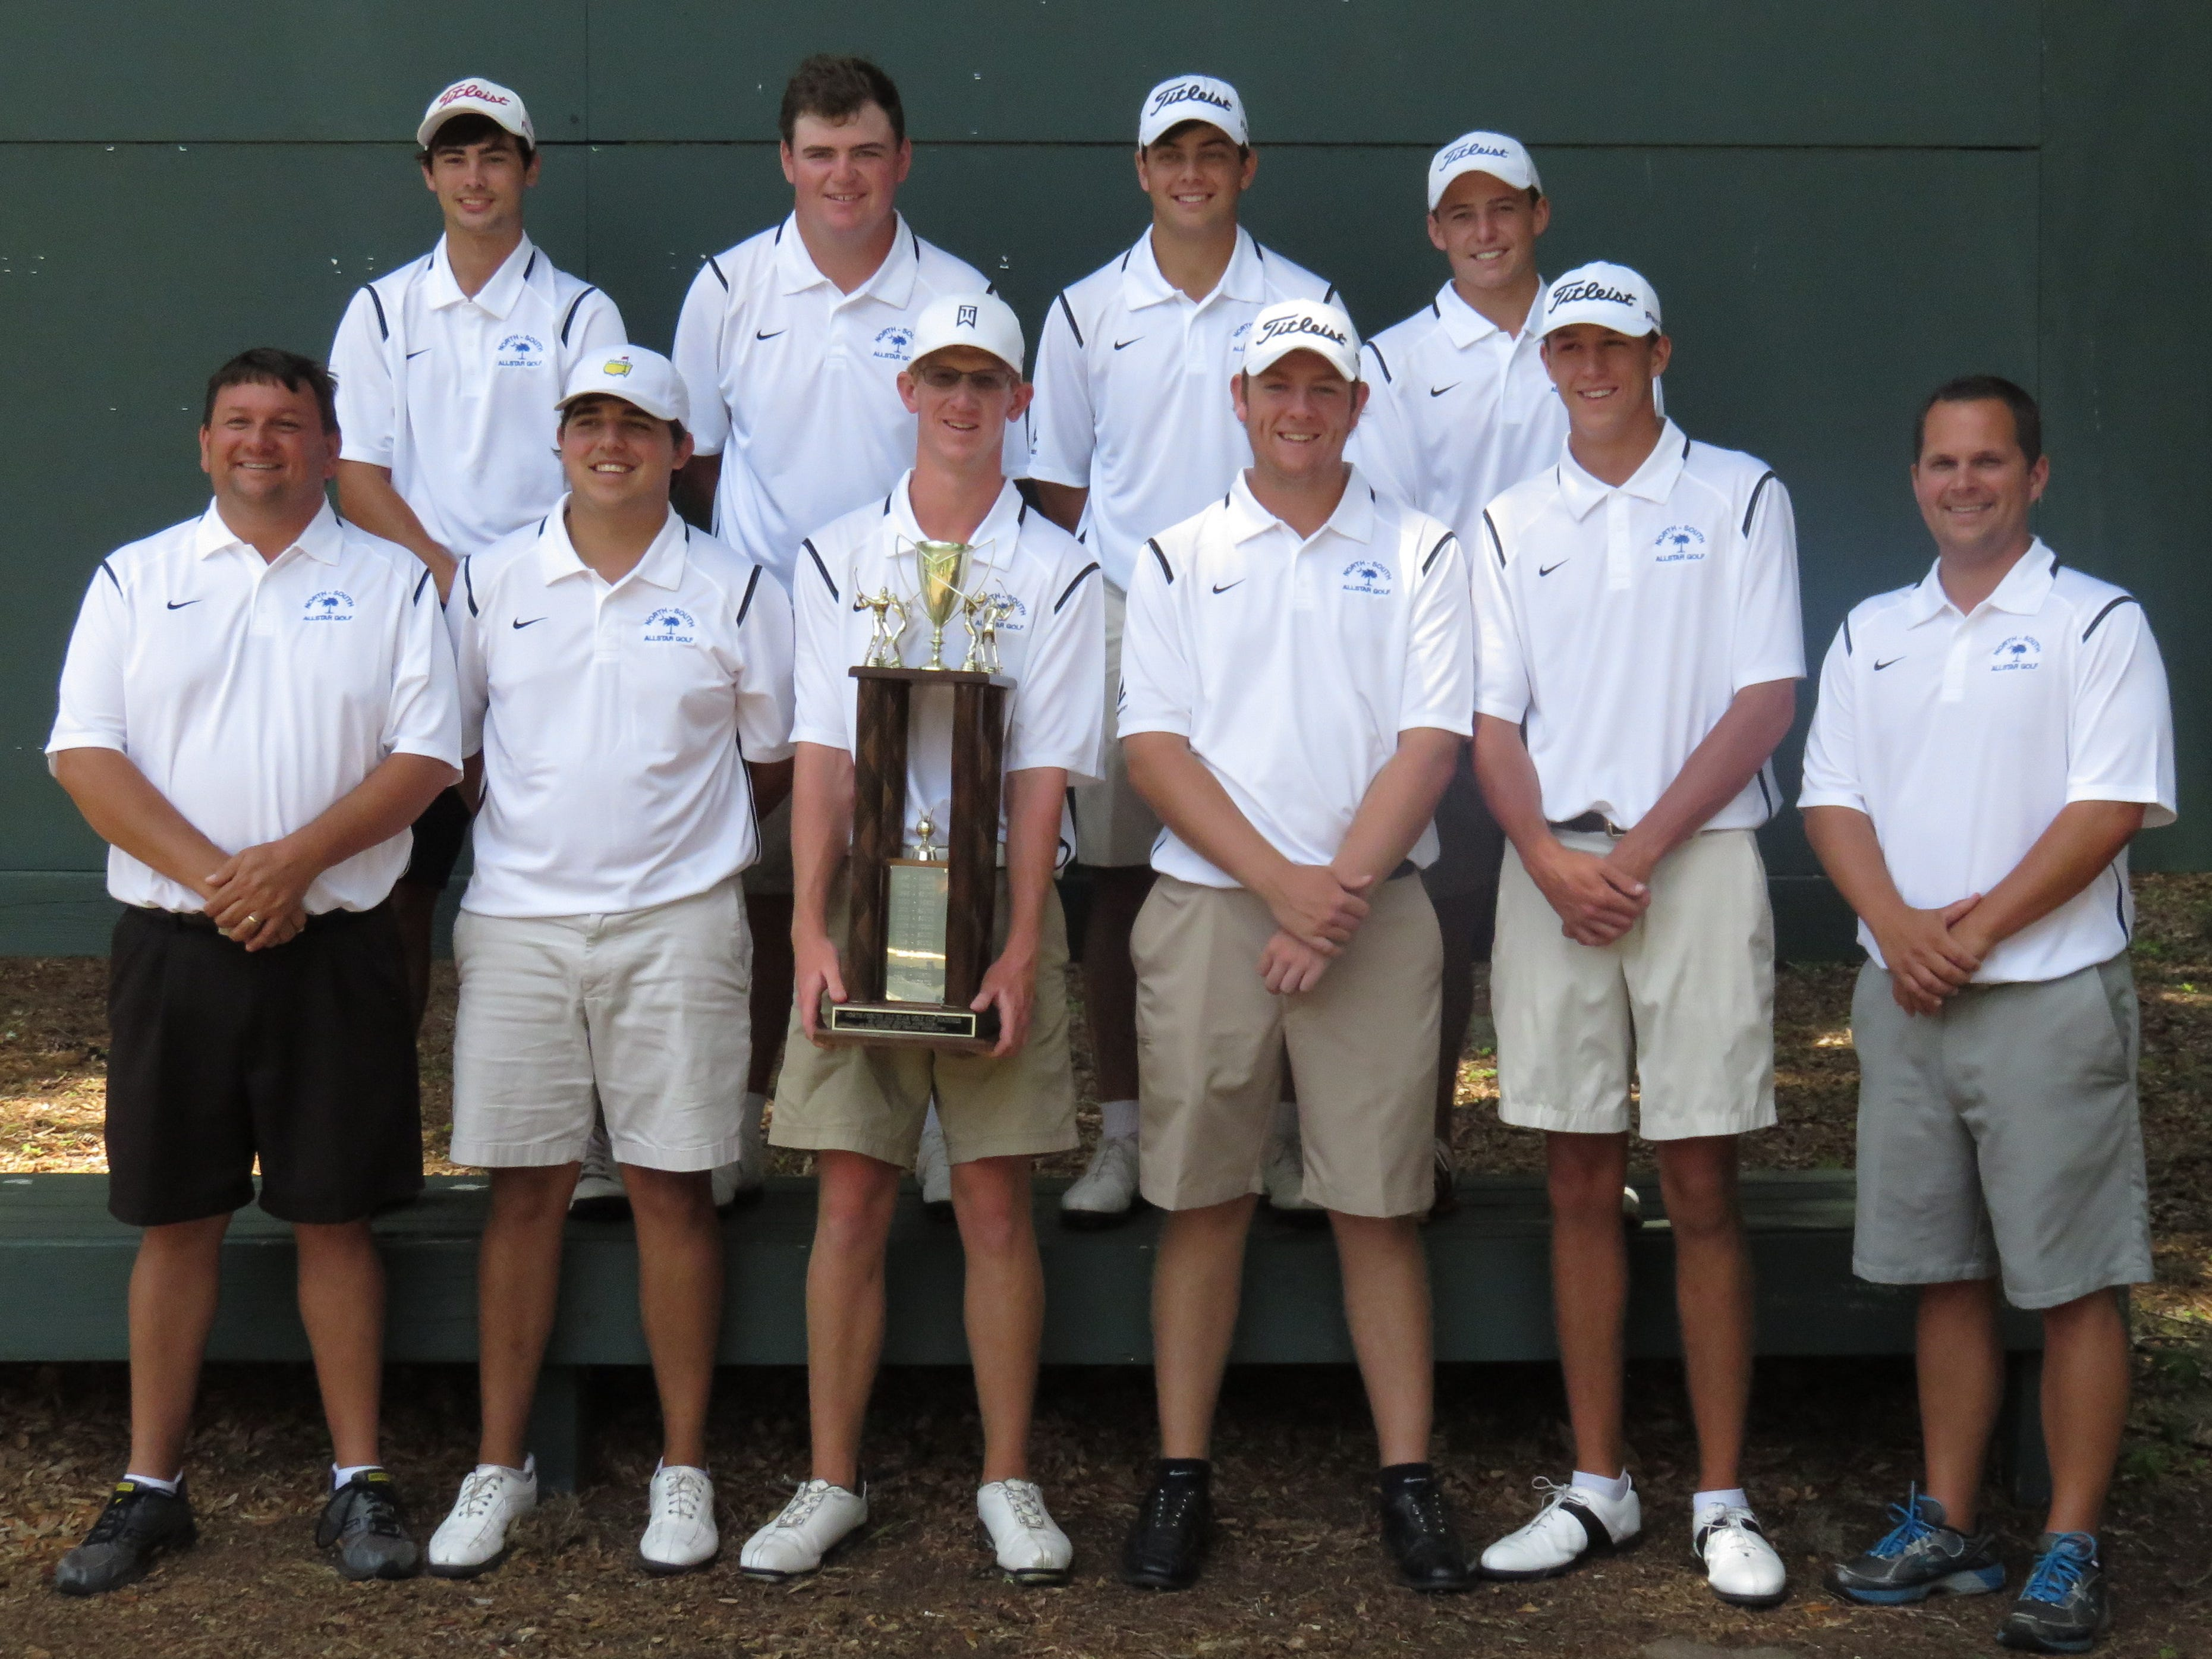 Members of the victorious North team in the recent North-South all-star matches were (left to right): front row, coach Chip Whitt, Weston Sanders, Zach Bishop, Matt Carter, Sawyer Mills and coach Stan Yarborough; back row, Matthew Terry, Michael McKee, Coleman Self and Jonathan Costello.